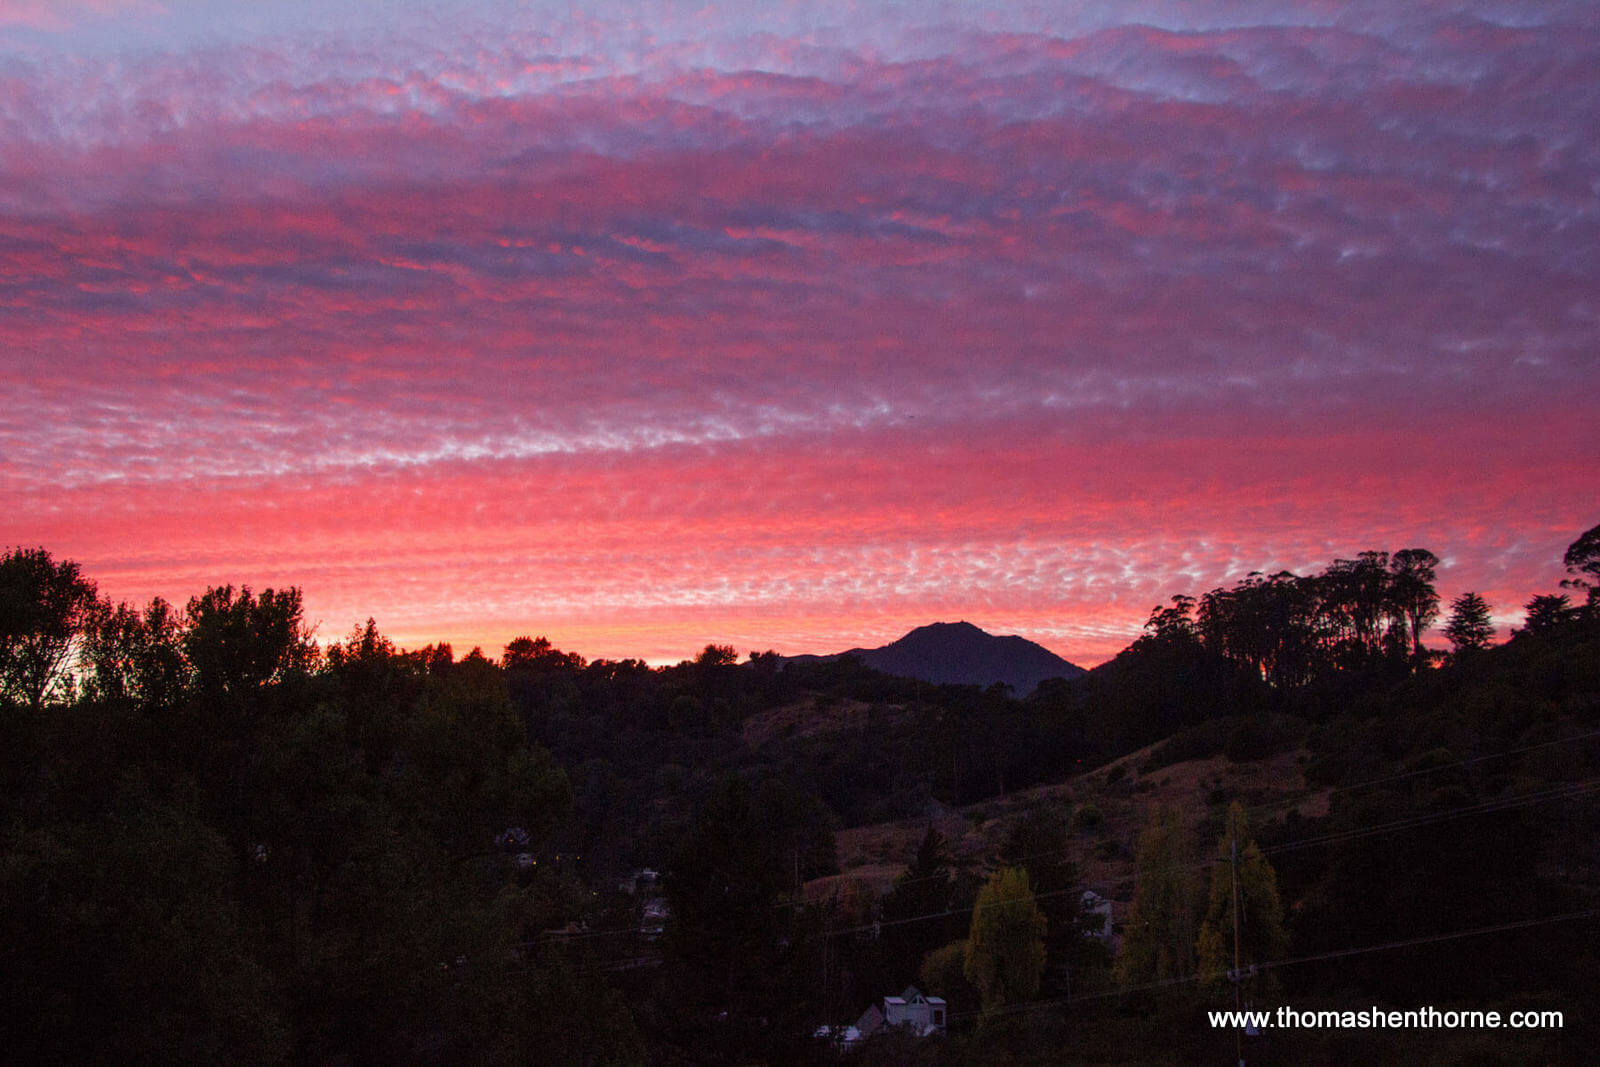 Sunset over Mt. Tamalpais